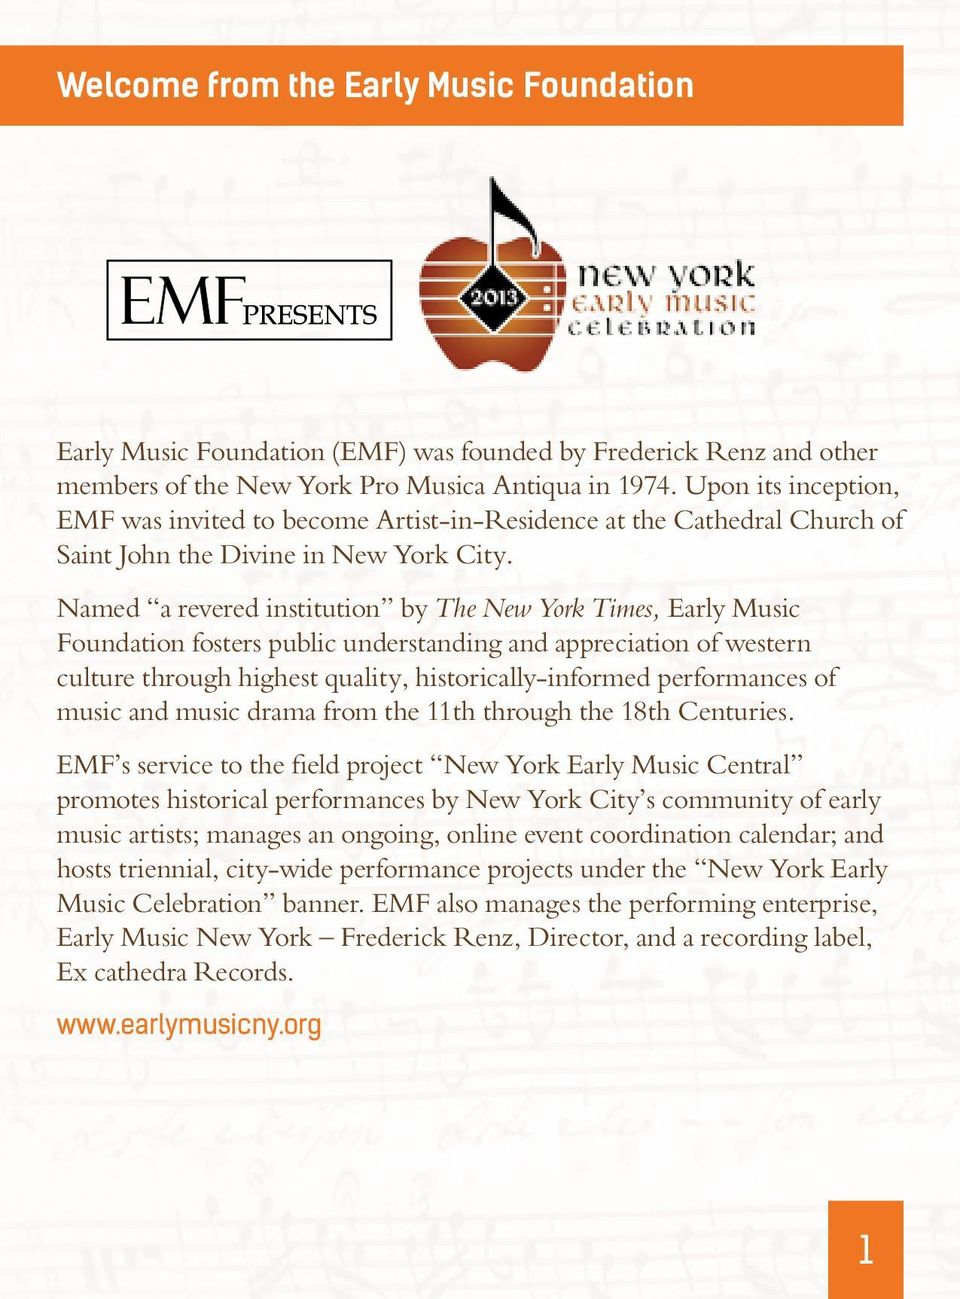 Named a revered institution by The New York Times, Early Music Foundation fosters public understanding and appreciation of western culture through highest quality, historically-informed performances